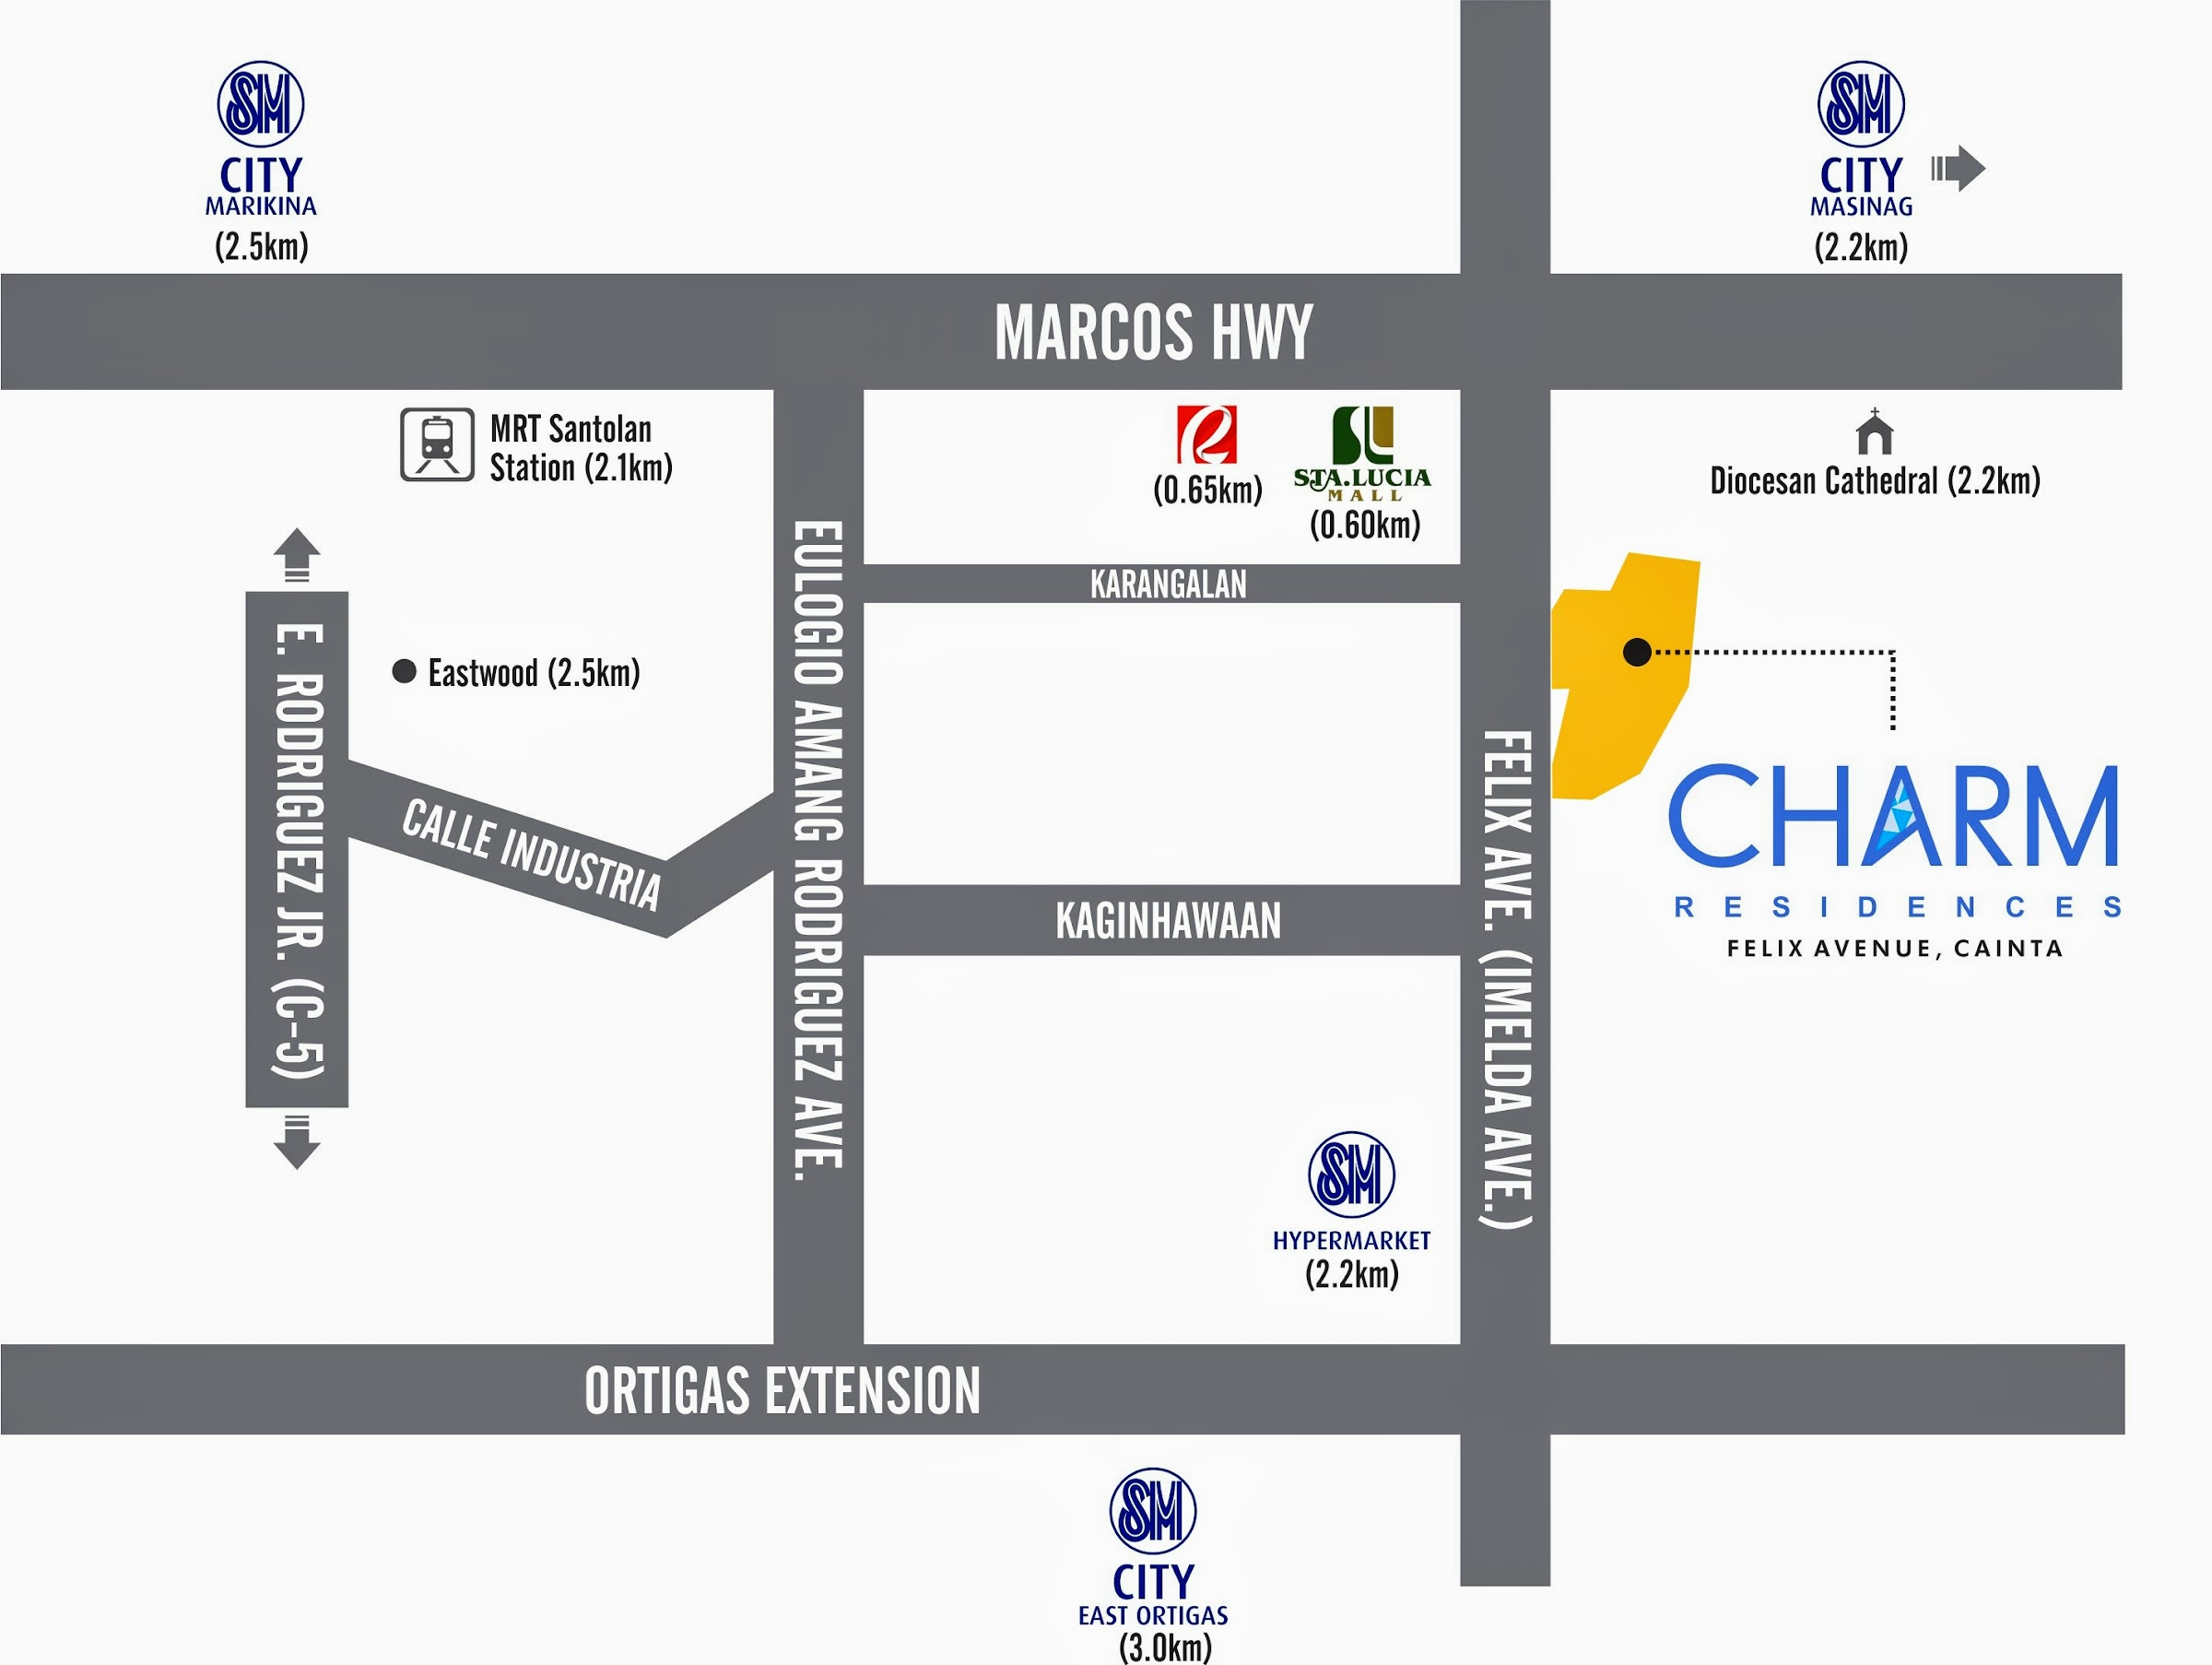 Charm Residences Cainta location map